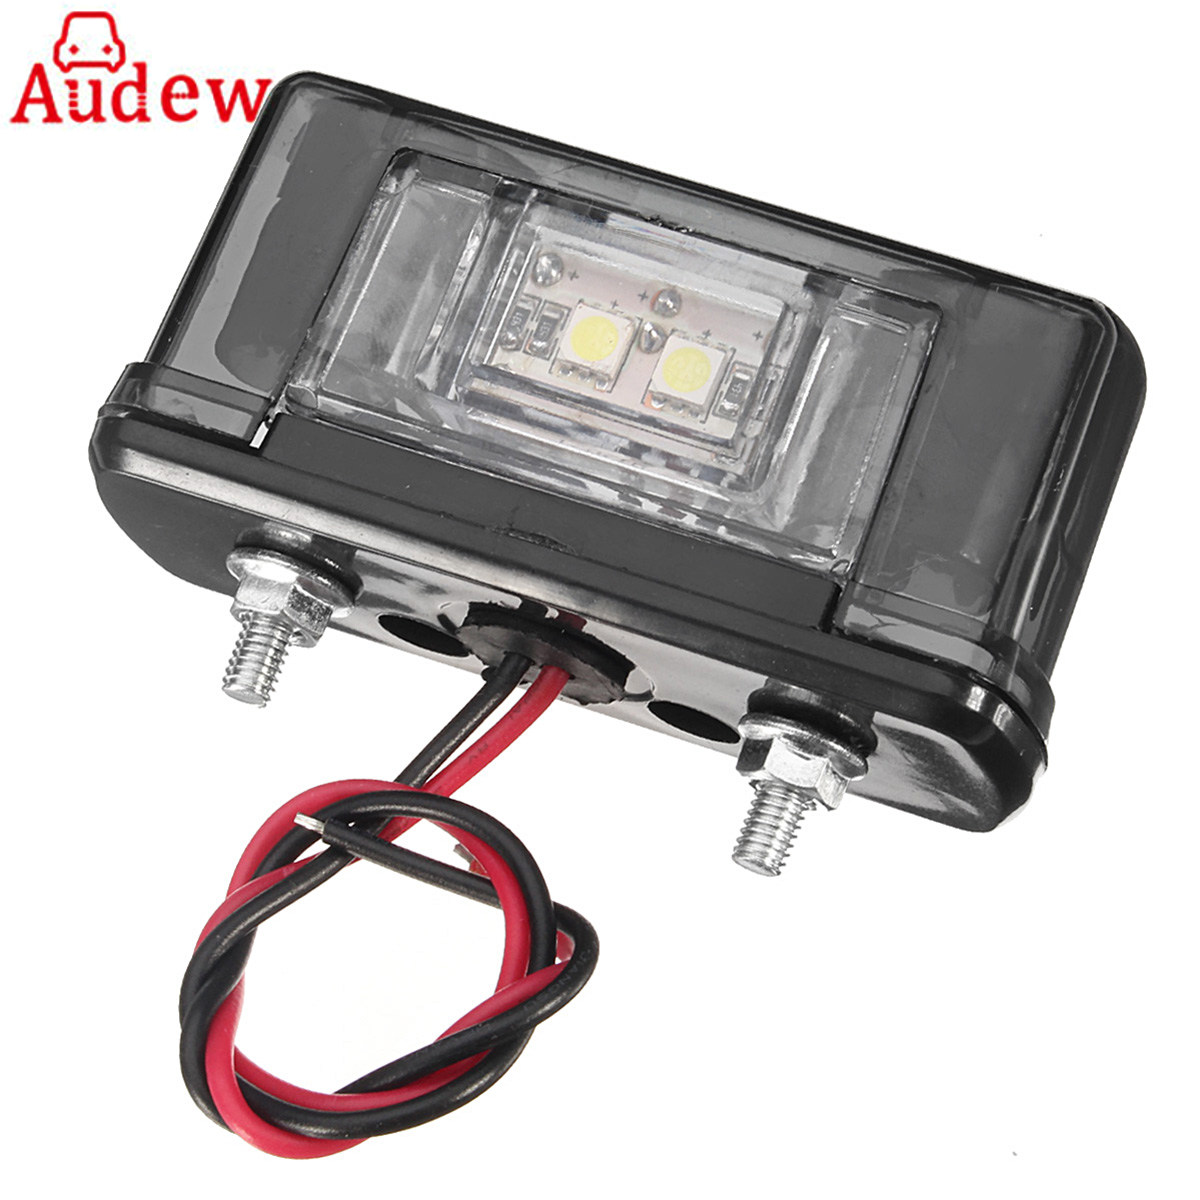 1Pcs 12V/24V Truck License Plate Light White&Red Number Plate Light for Automotive Trailer RV Truck Motorcycle Boats Aircraft 2x 12v bright 3leds license plate light lamp bulbs number plate light for motorcycle boats aircraft automotive trailer rv truck